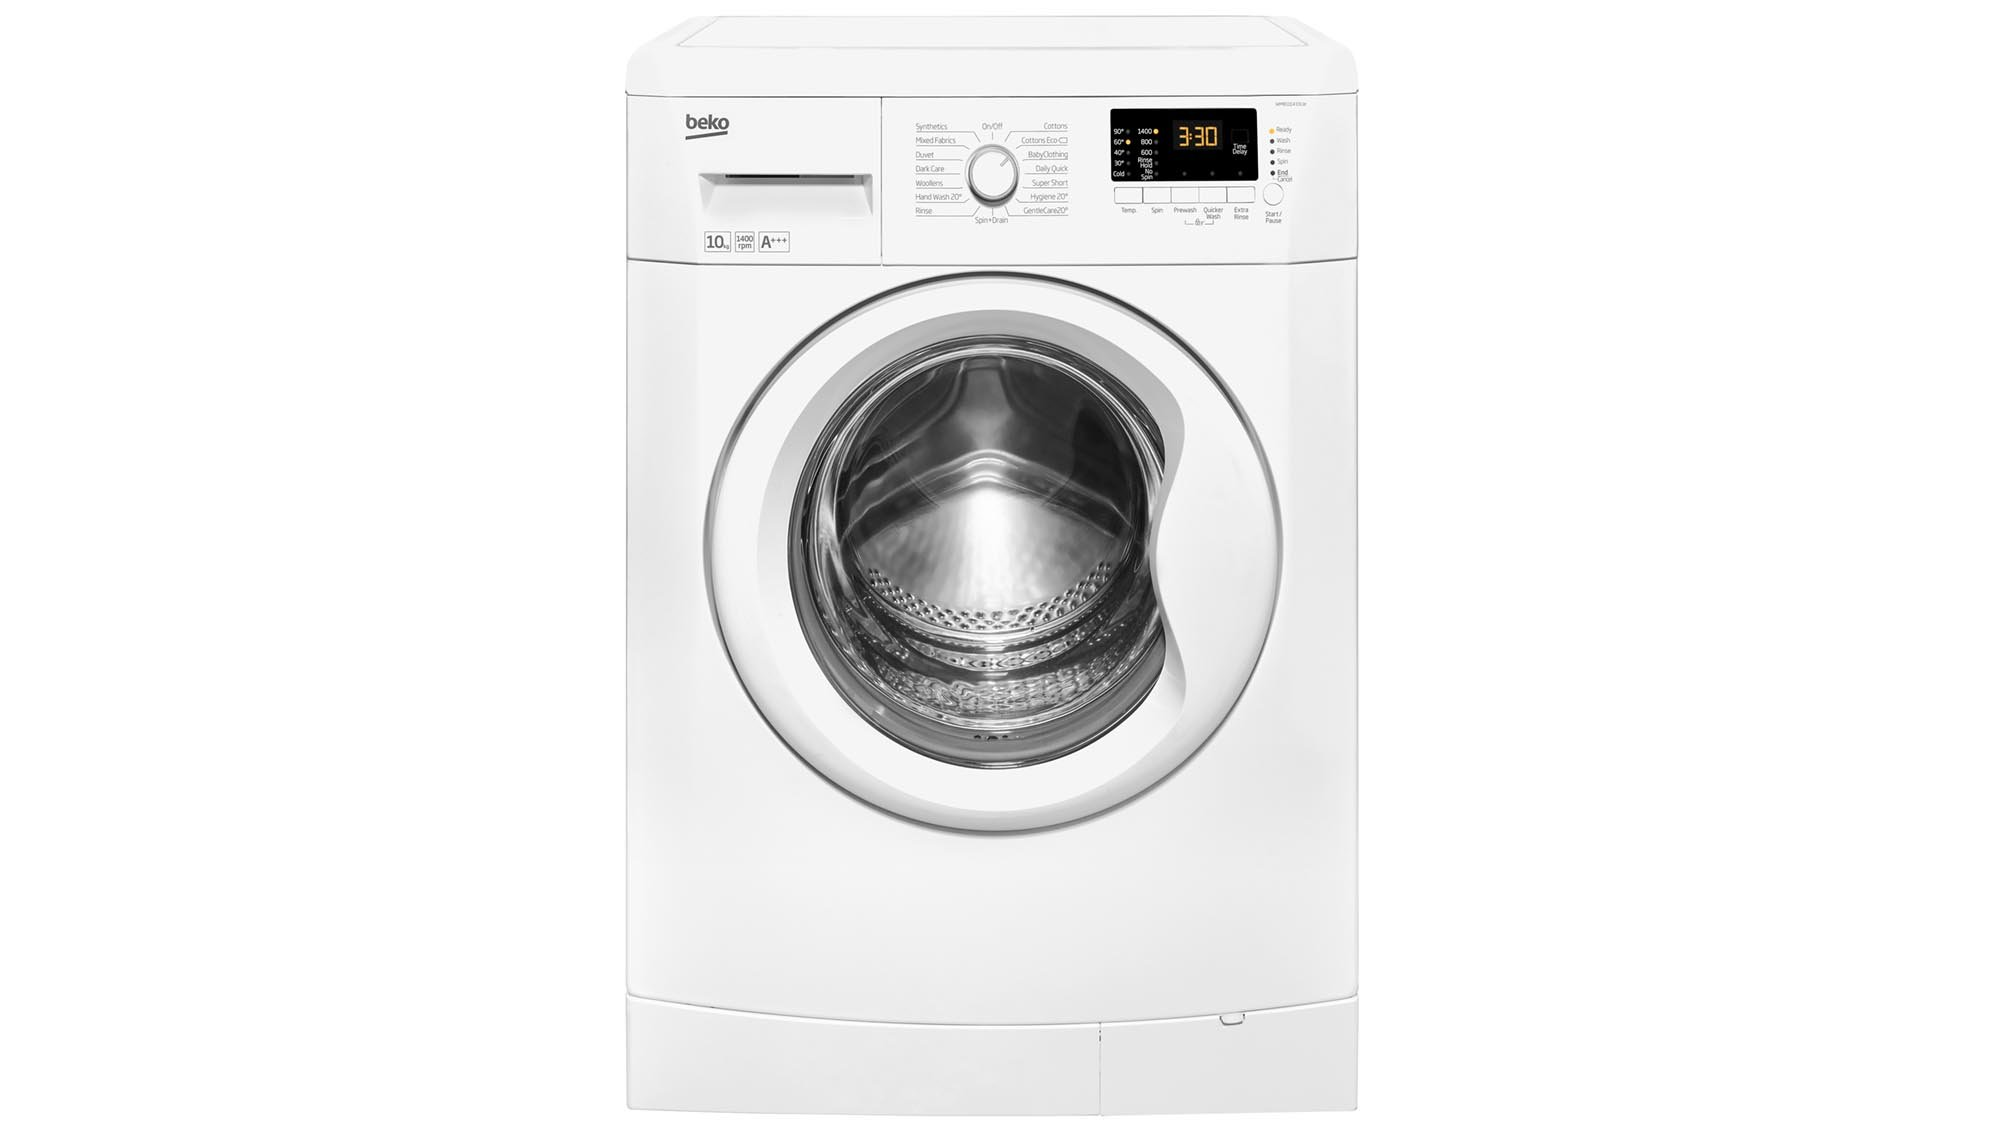 electrolux 9kg front loader. 2. beko wmb101433lw: the best washing machine under £300 electrolux 9kg front loader